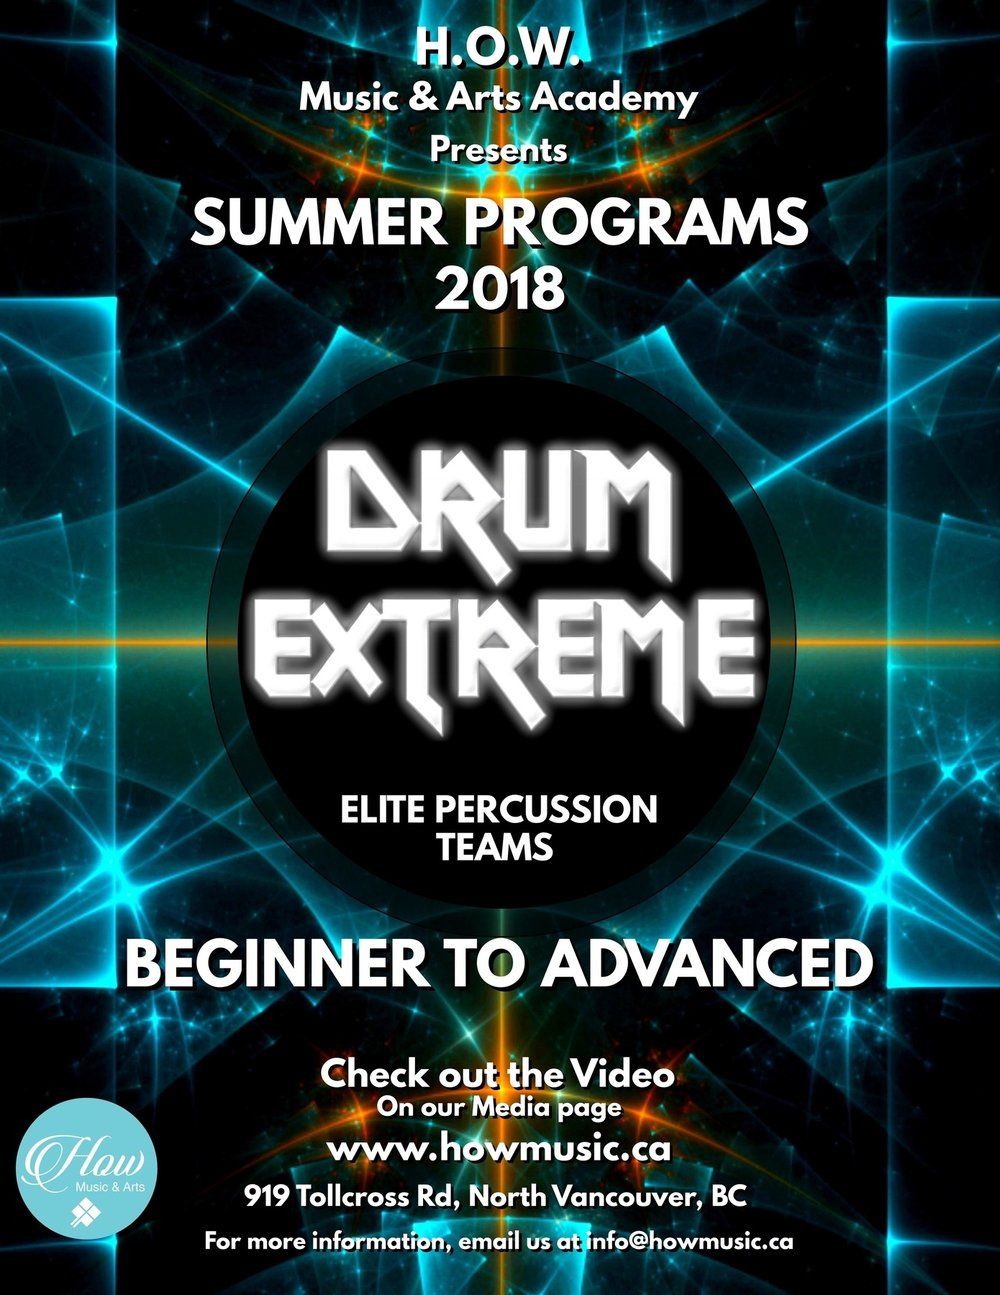 how-music-and-arts-drum-extreme-summer-camps-2018.jpg